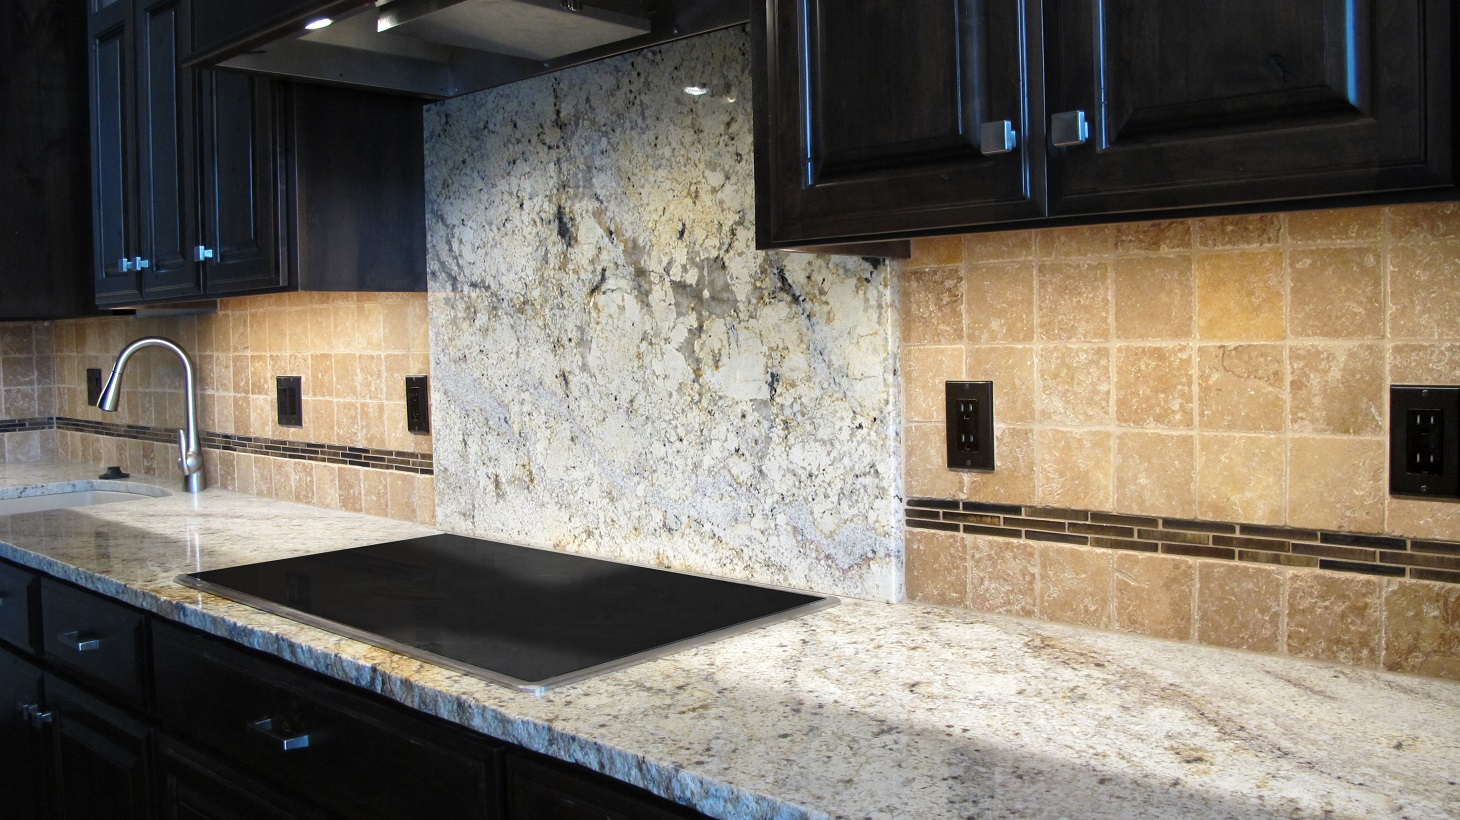 Kitchen backsplash rustic granite countertops tumbled travertine noce fashion accents daltile shimmer 5/8x3 umber decorative band stainless steel appliances electric cooktop full height